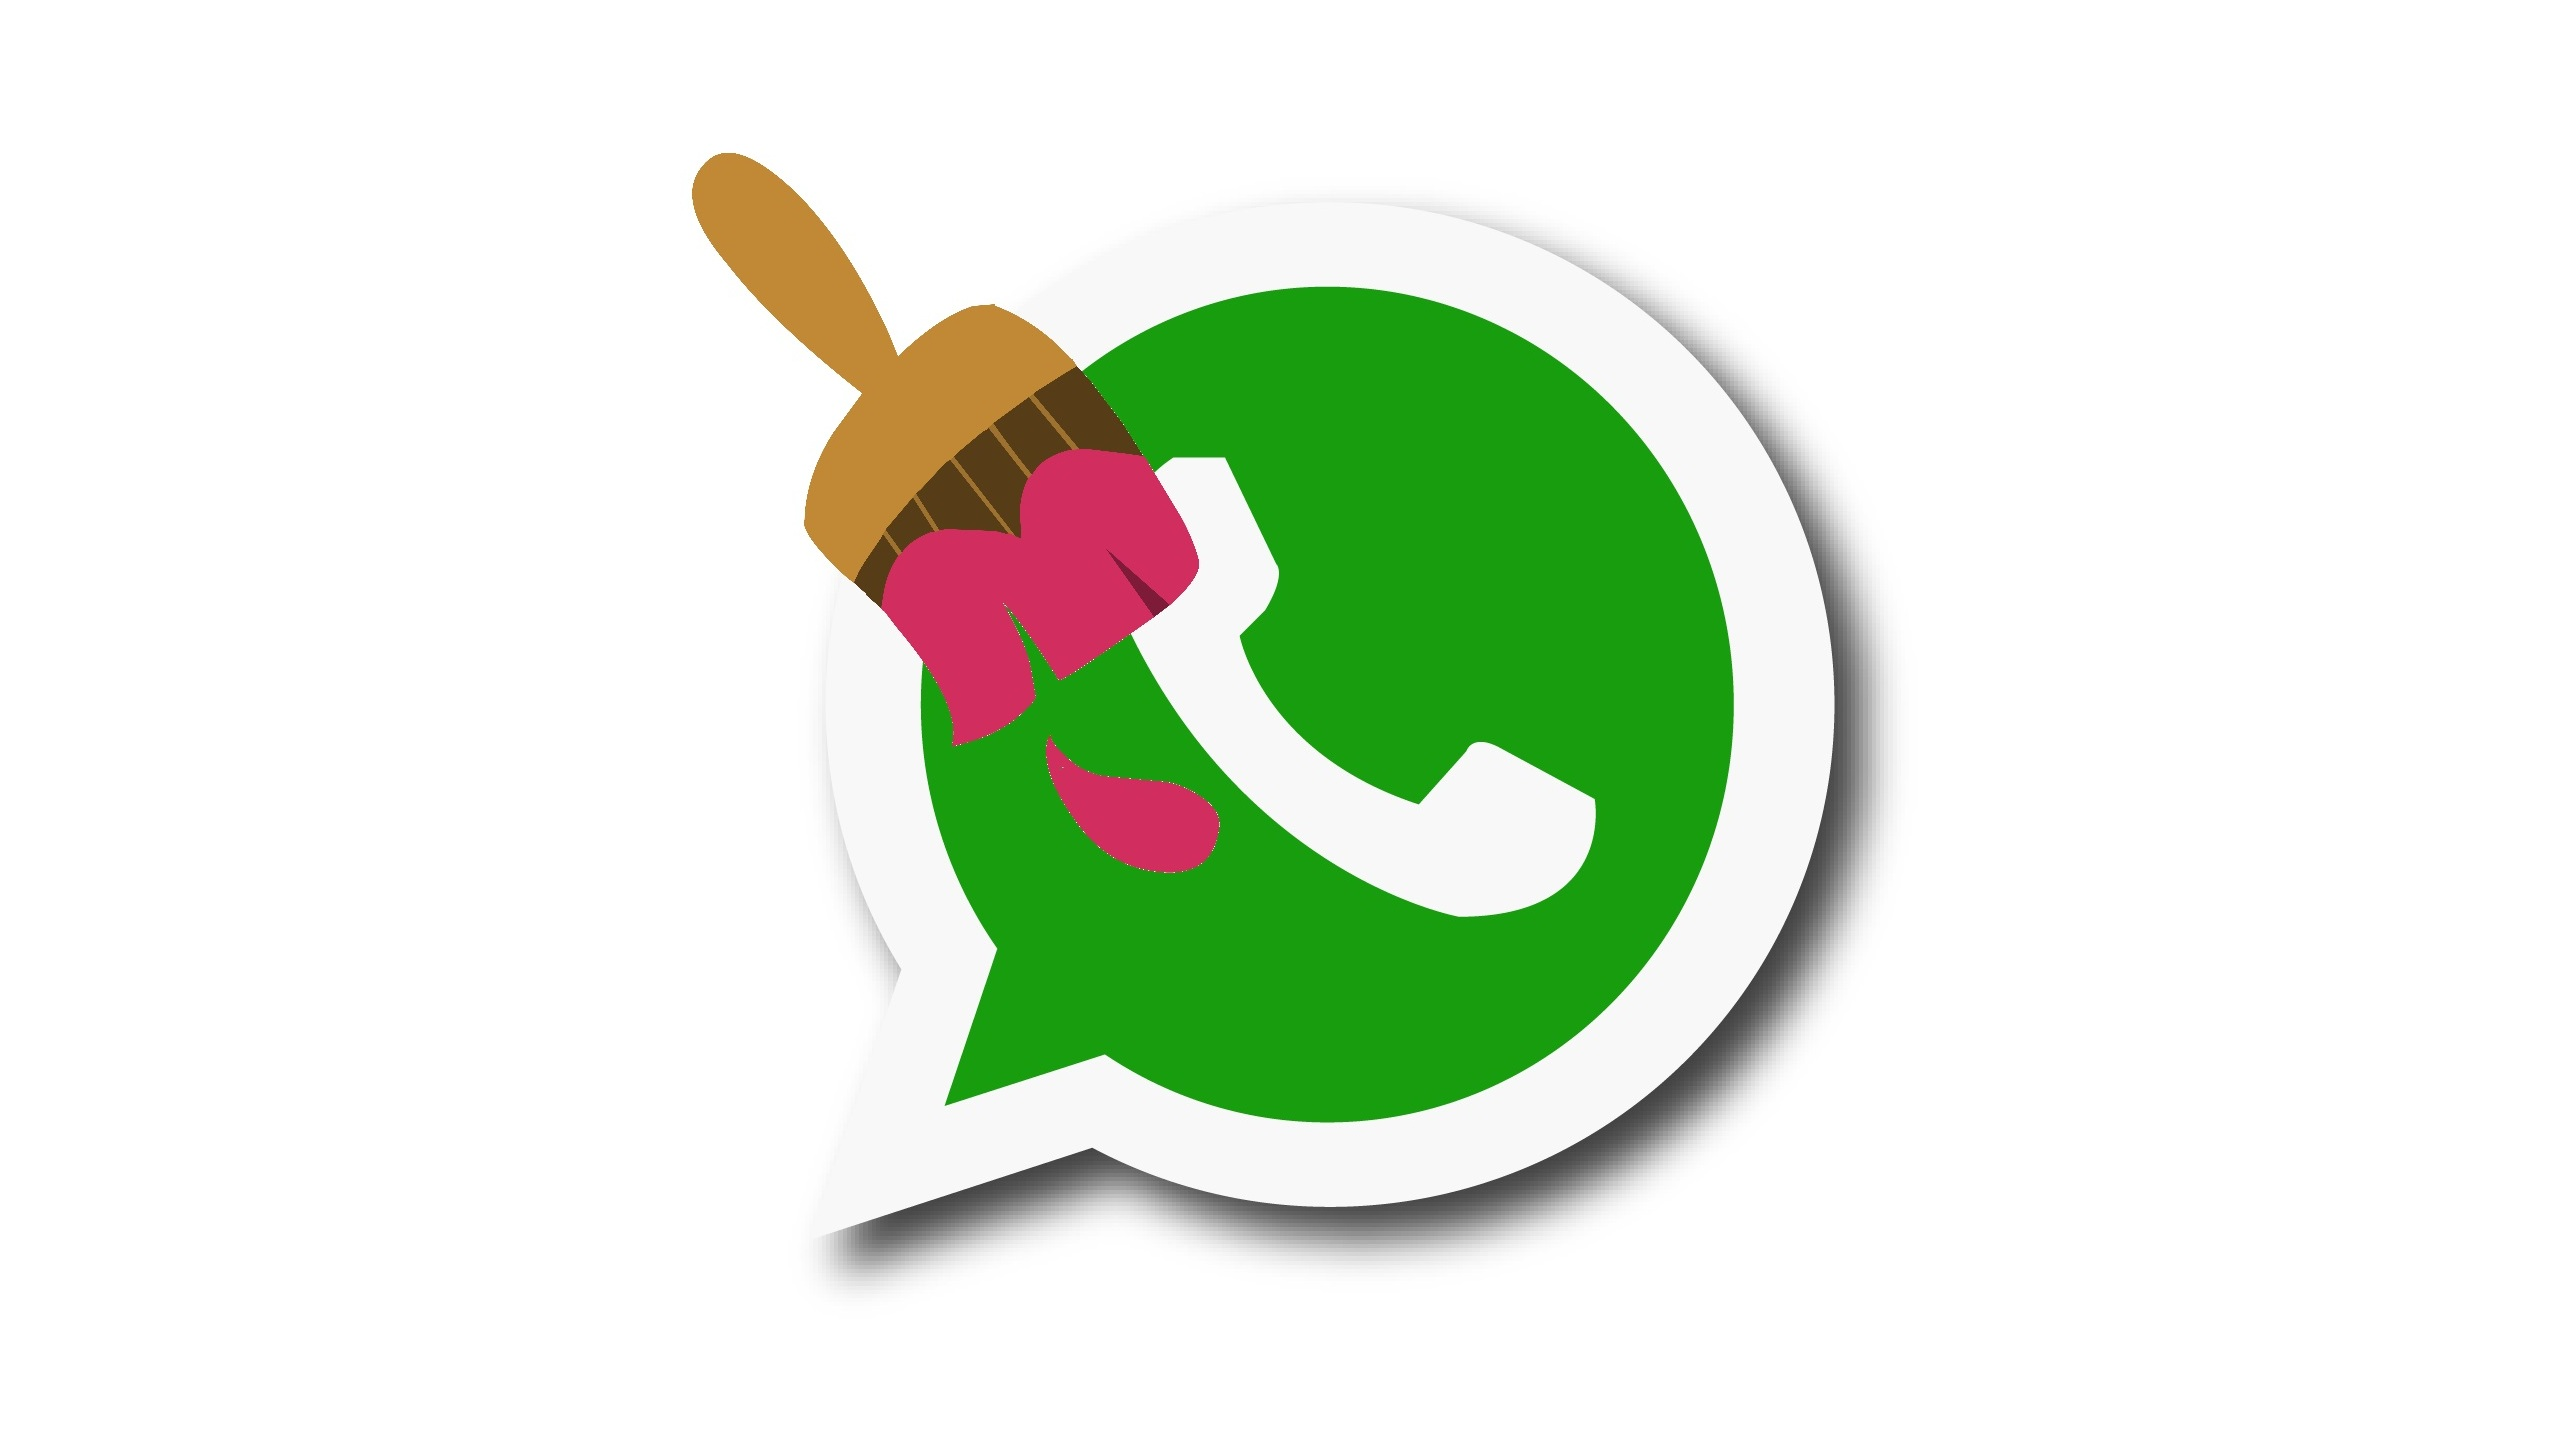 After the WhatsApp voice calling feature  the new app seems to be update  with Material. WhatsApp just received a new design change